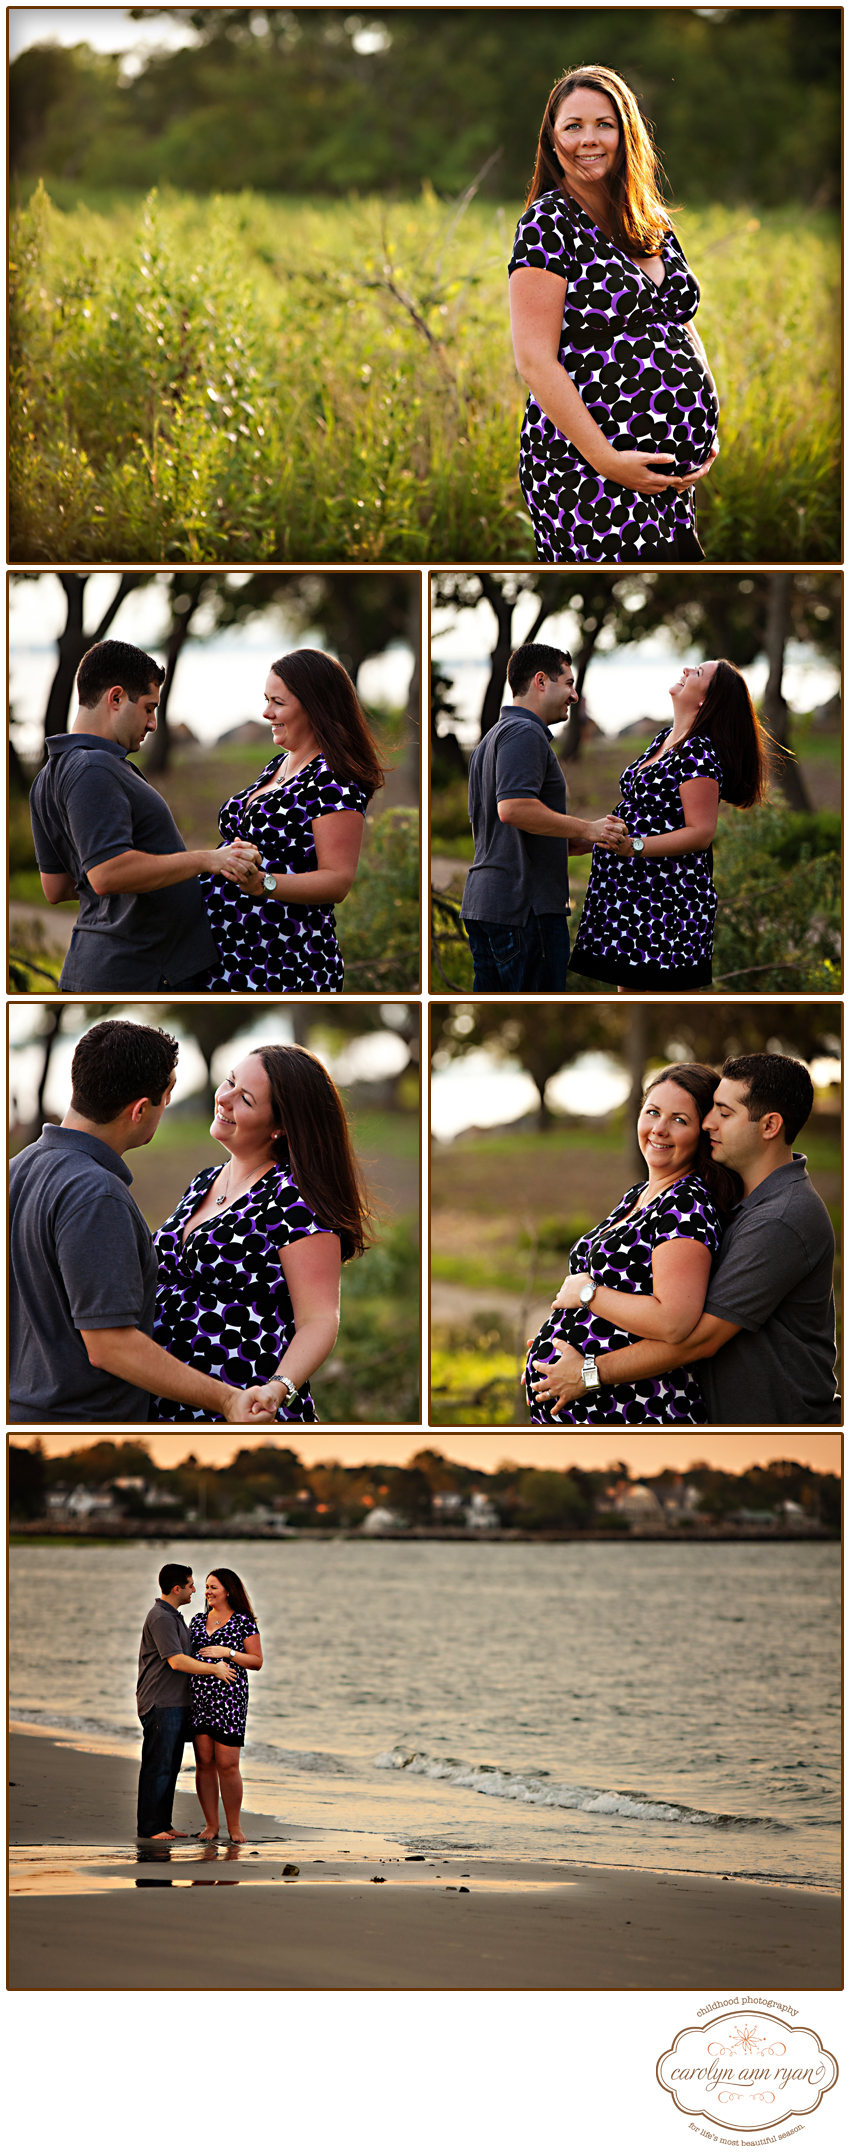 Charlotte, NC Maternity Photographer Carolyn Ann Ryan